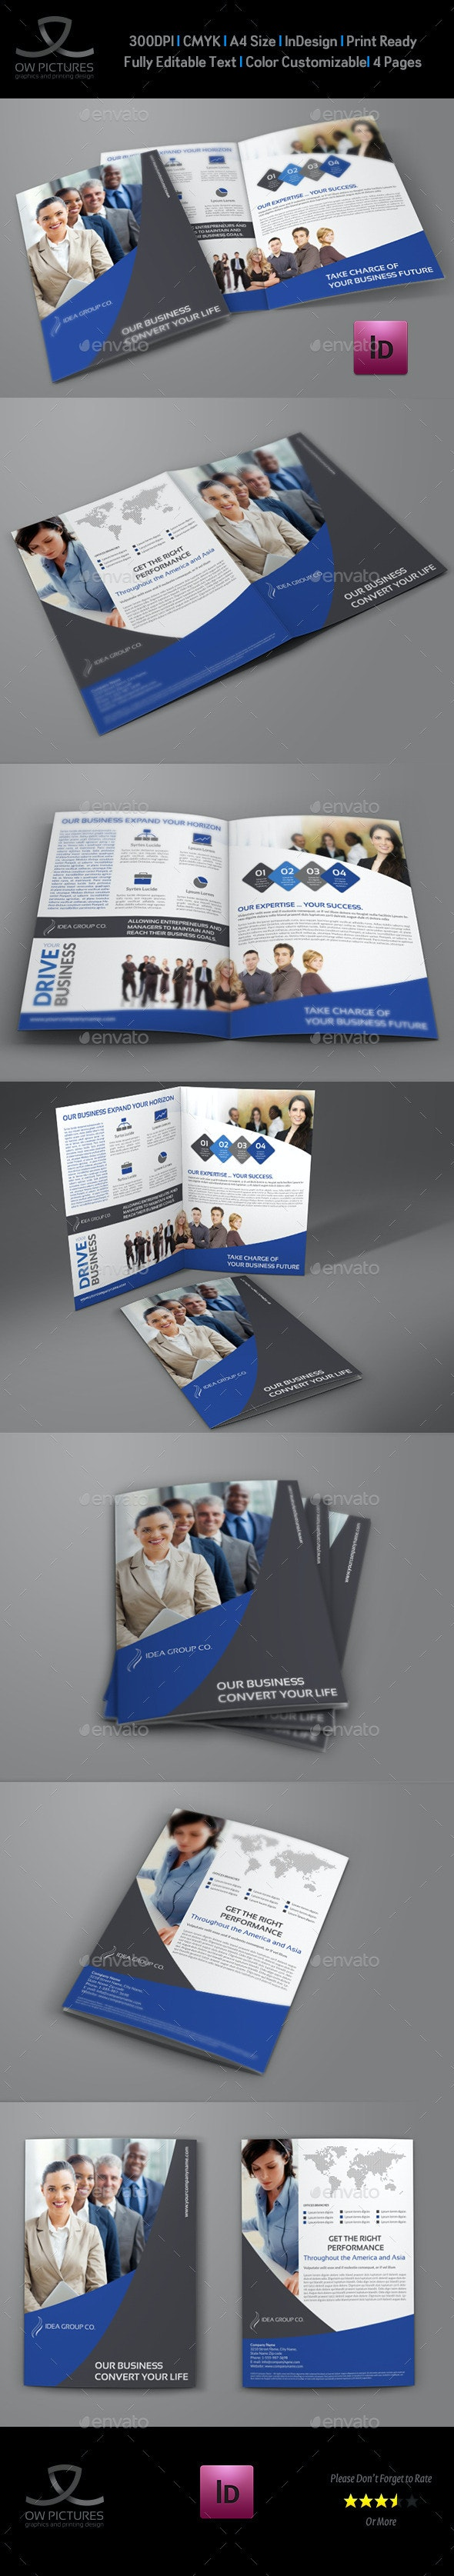 Company Brochure Bi-Fold Template Vol.31 - Corporate Brochures